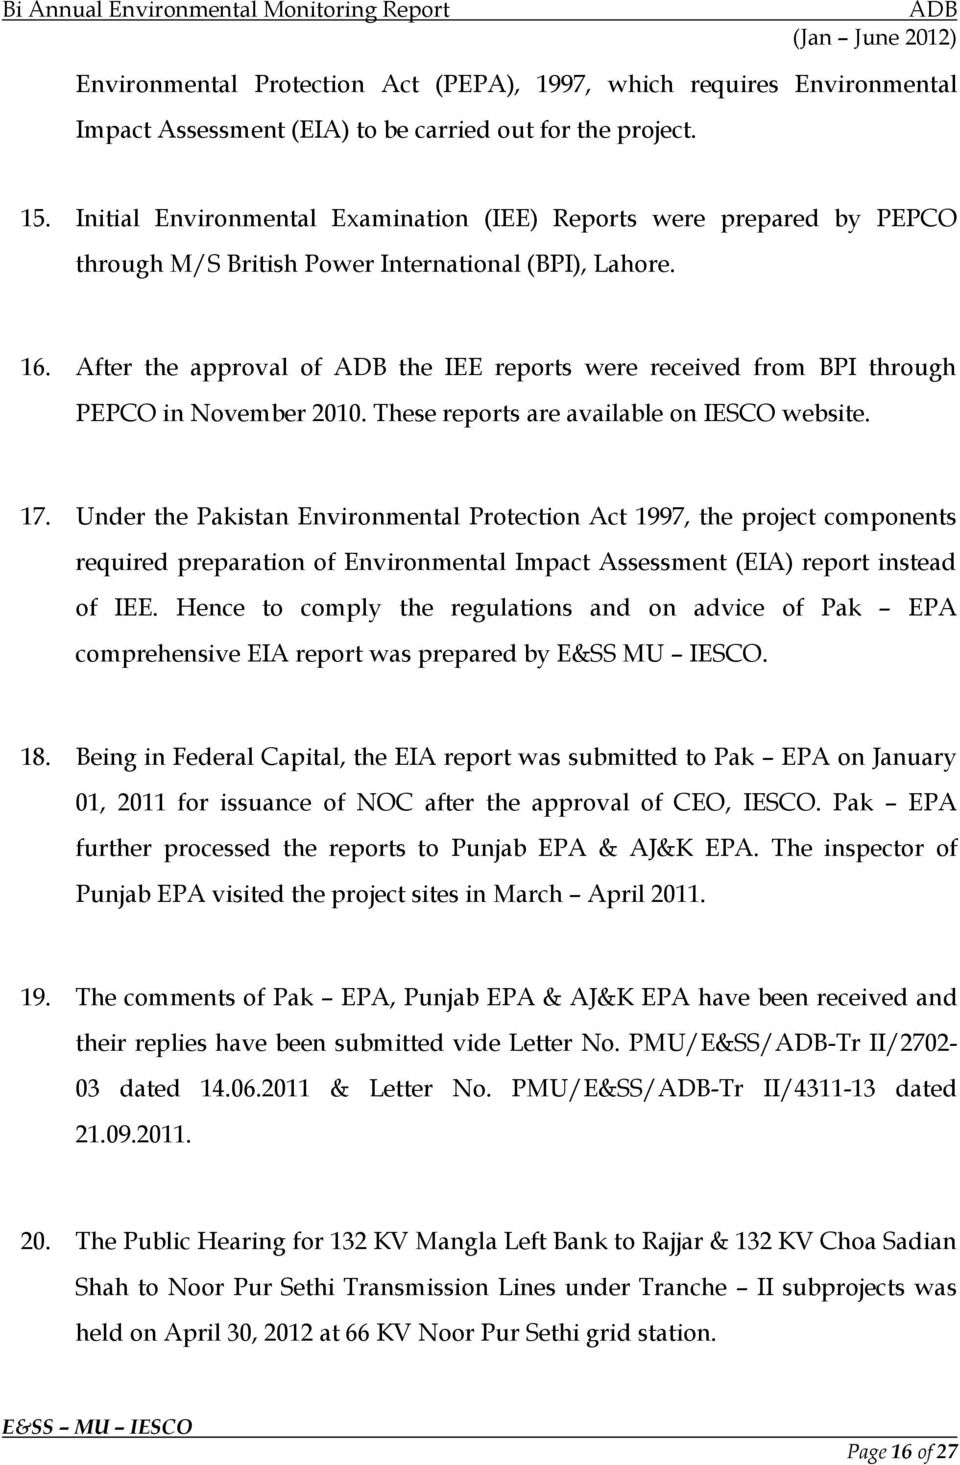 After the approval of the IEE reports were received from BPI through PEPCO in November 2010. These reports are available on IESCO website. 17.